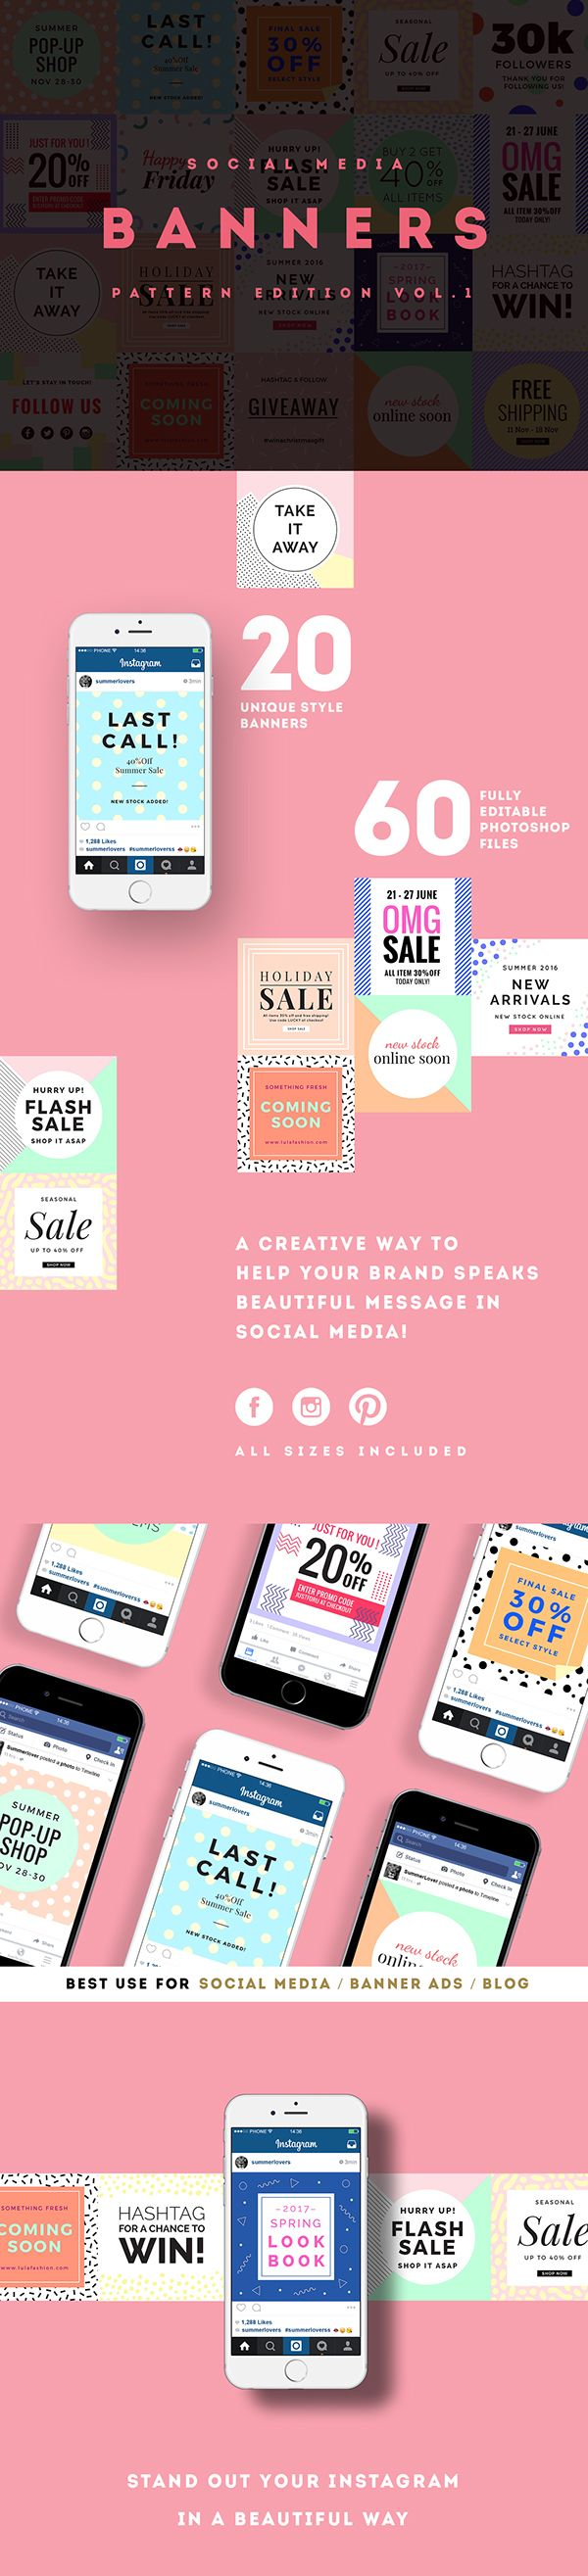 A creative way to help your brand speaks beautiful message in Social Media!Pattern edition Social Media banners pack offers 20 different unique trendy pattern designs for upgrading your online shop's social media post or sales promotion on Facebook, Ins…